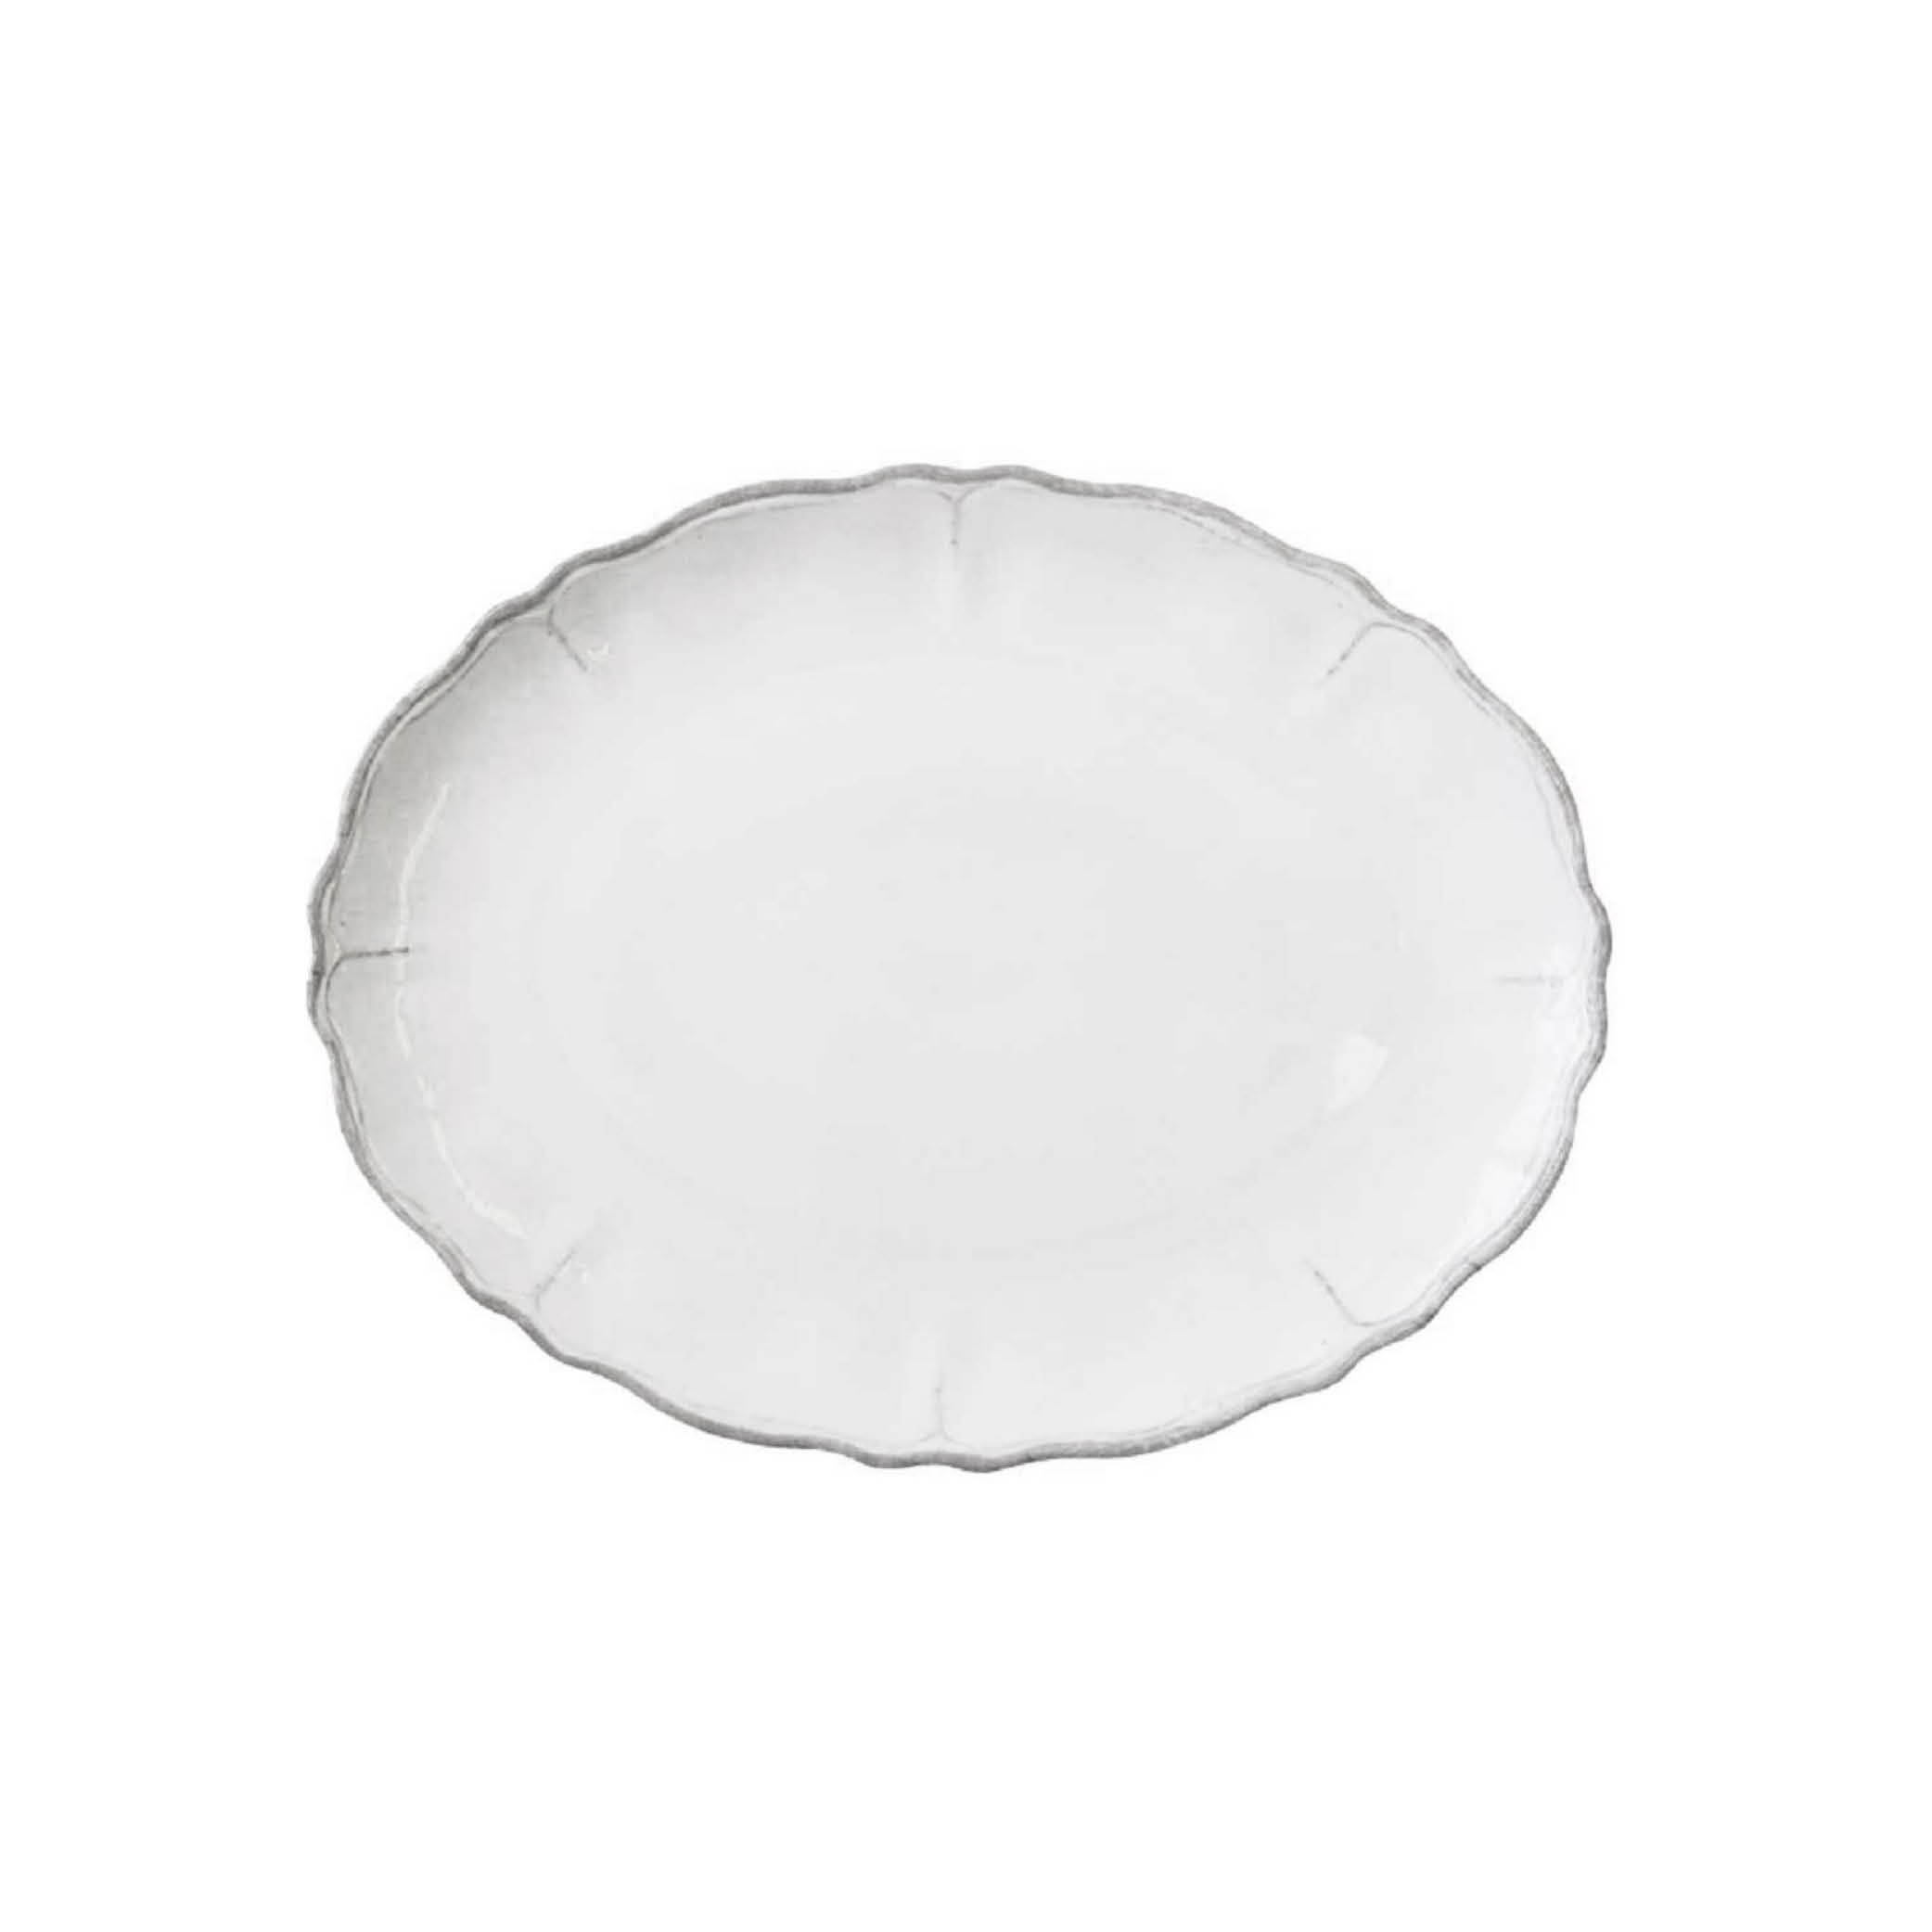 Rustica White Platter $29.50   Wants 1 Has 0 Needs 1